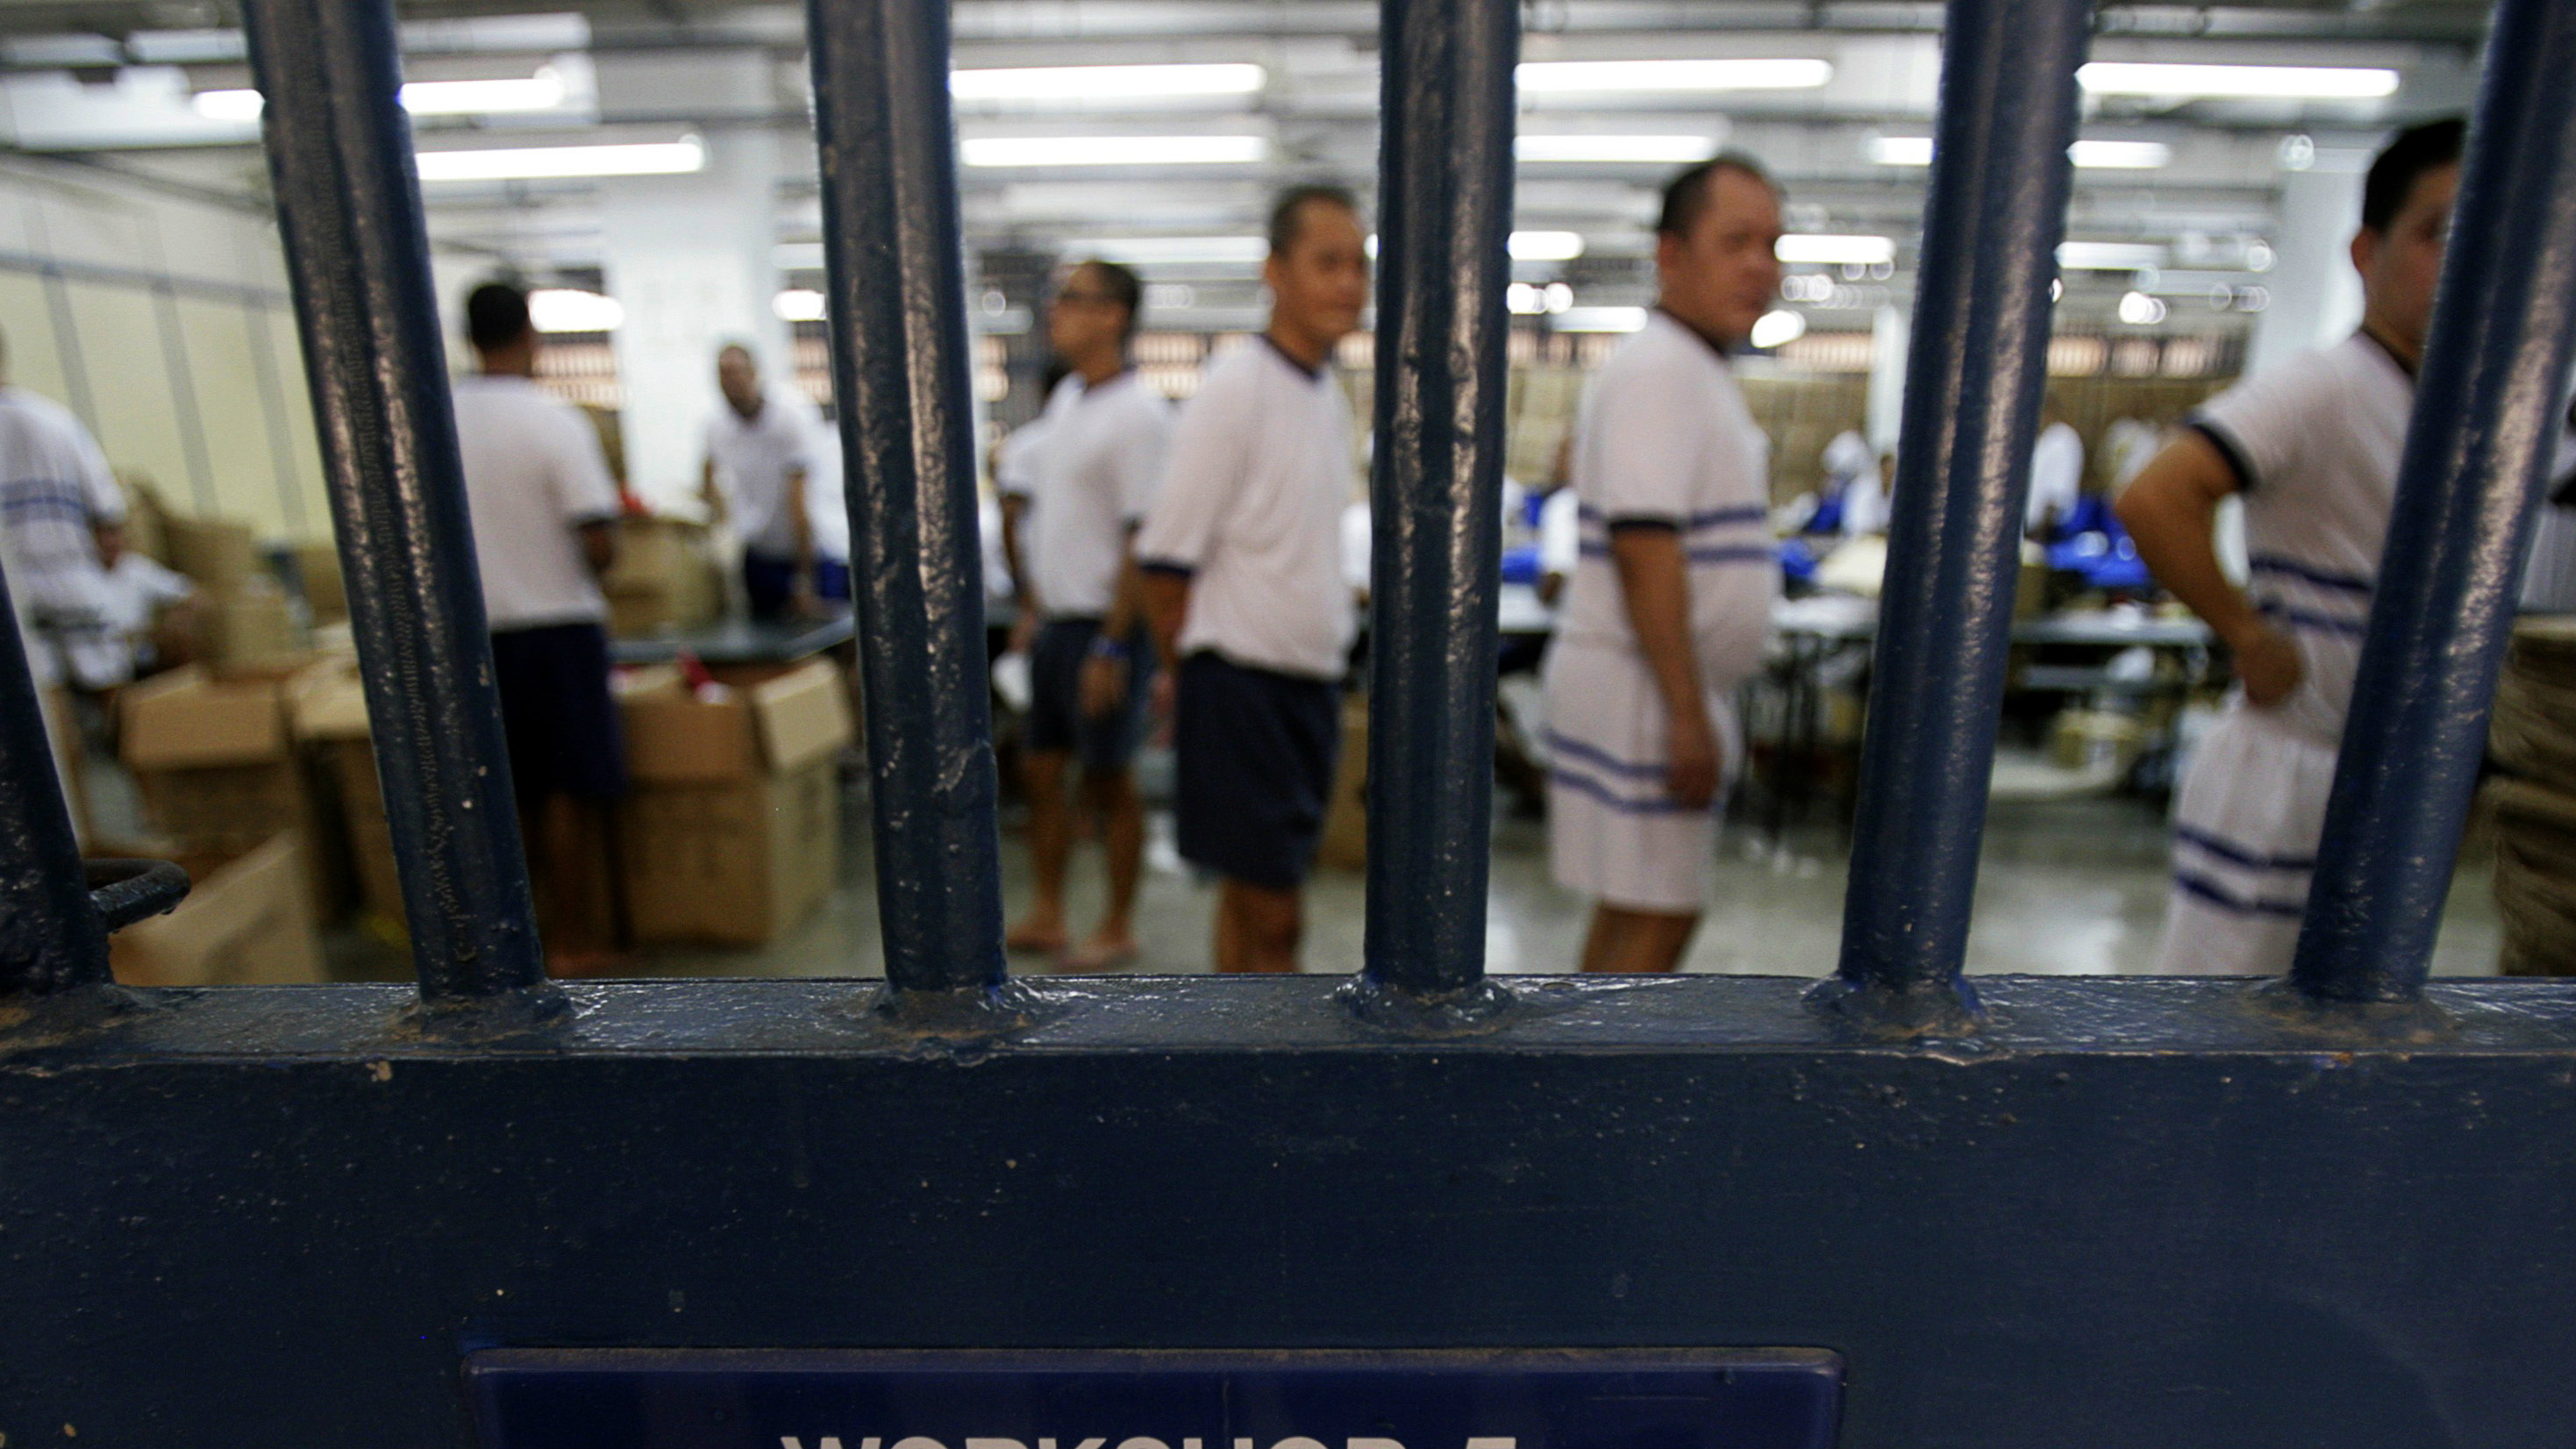 Inmates are seen behind the bars on a gate to a workshop at Sinapore's Tanah Merah Prison June 23, 2009. The inmates have been preparing goodie bags to be given away to spectators at this year's National Day Parade, as part of the Yellow Ribbon Project which aims to tackle negative community attitudes towards people who have served time in Singapore's prisons. REUTERS/Vivek Prakash